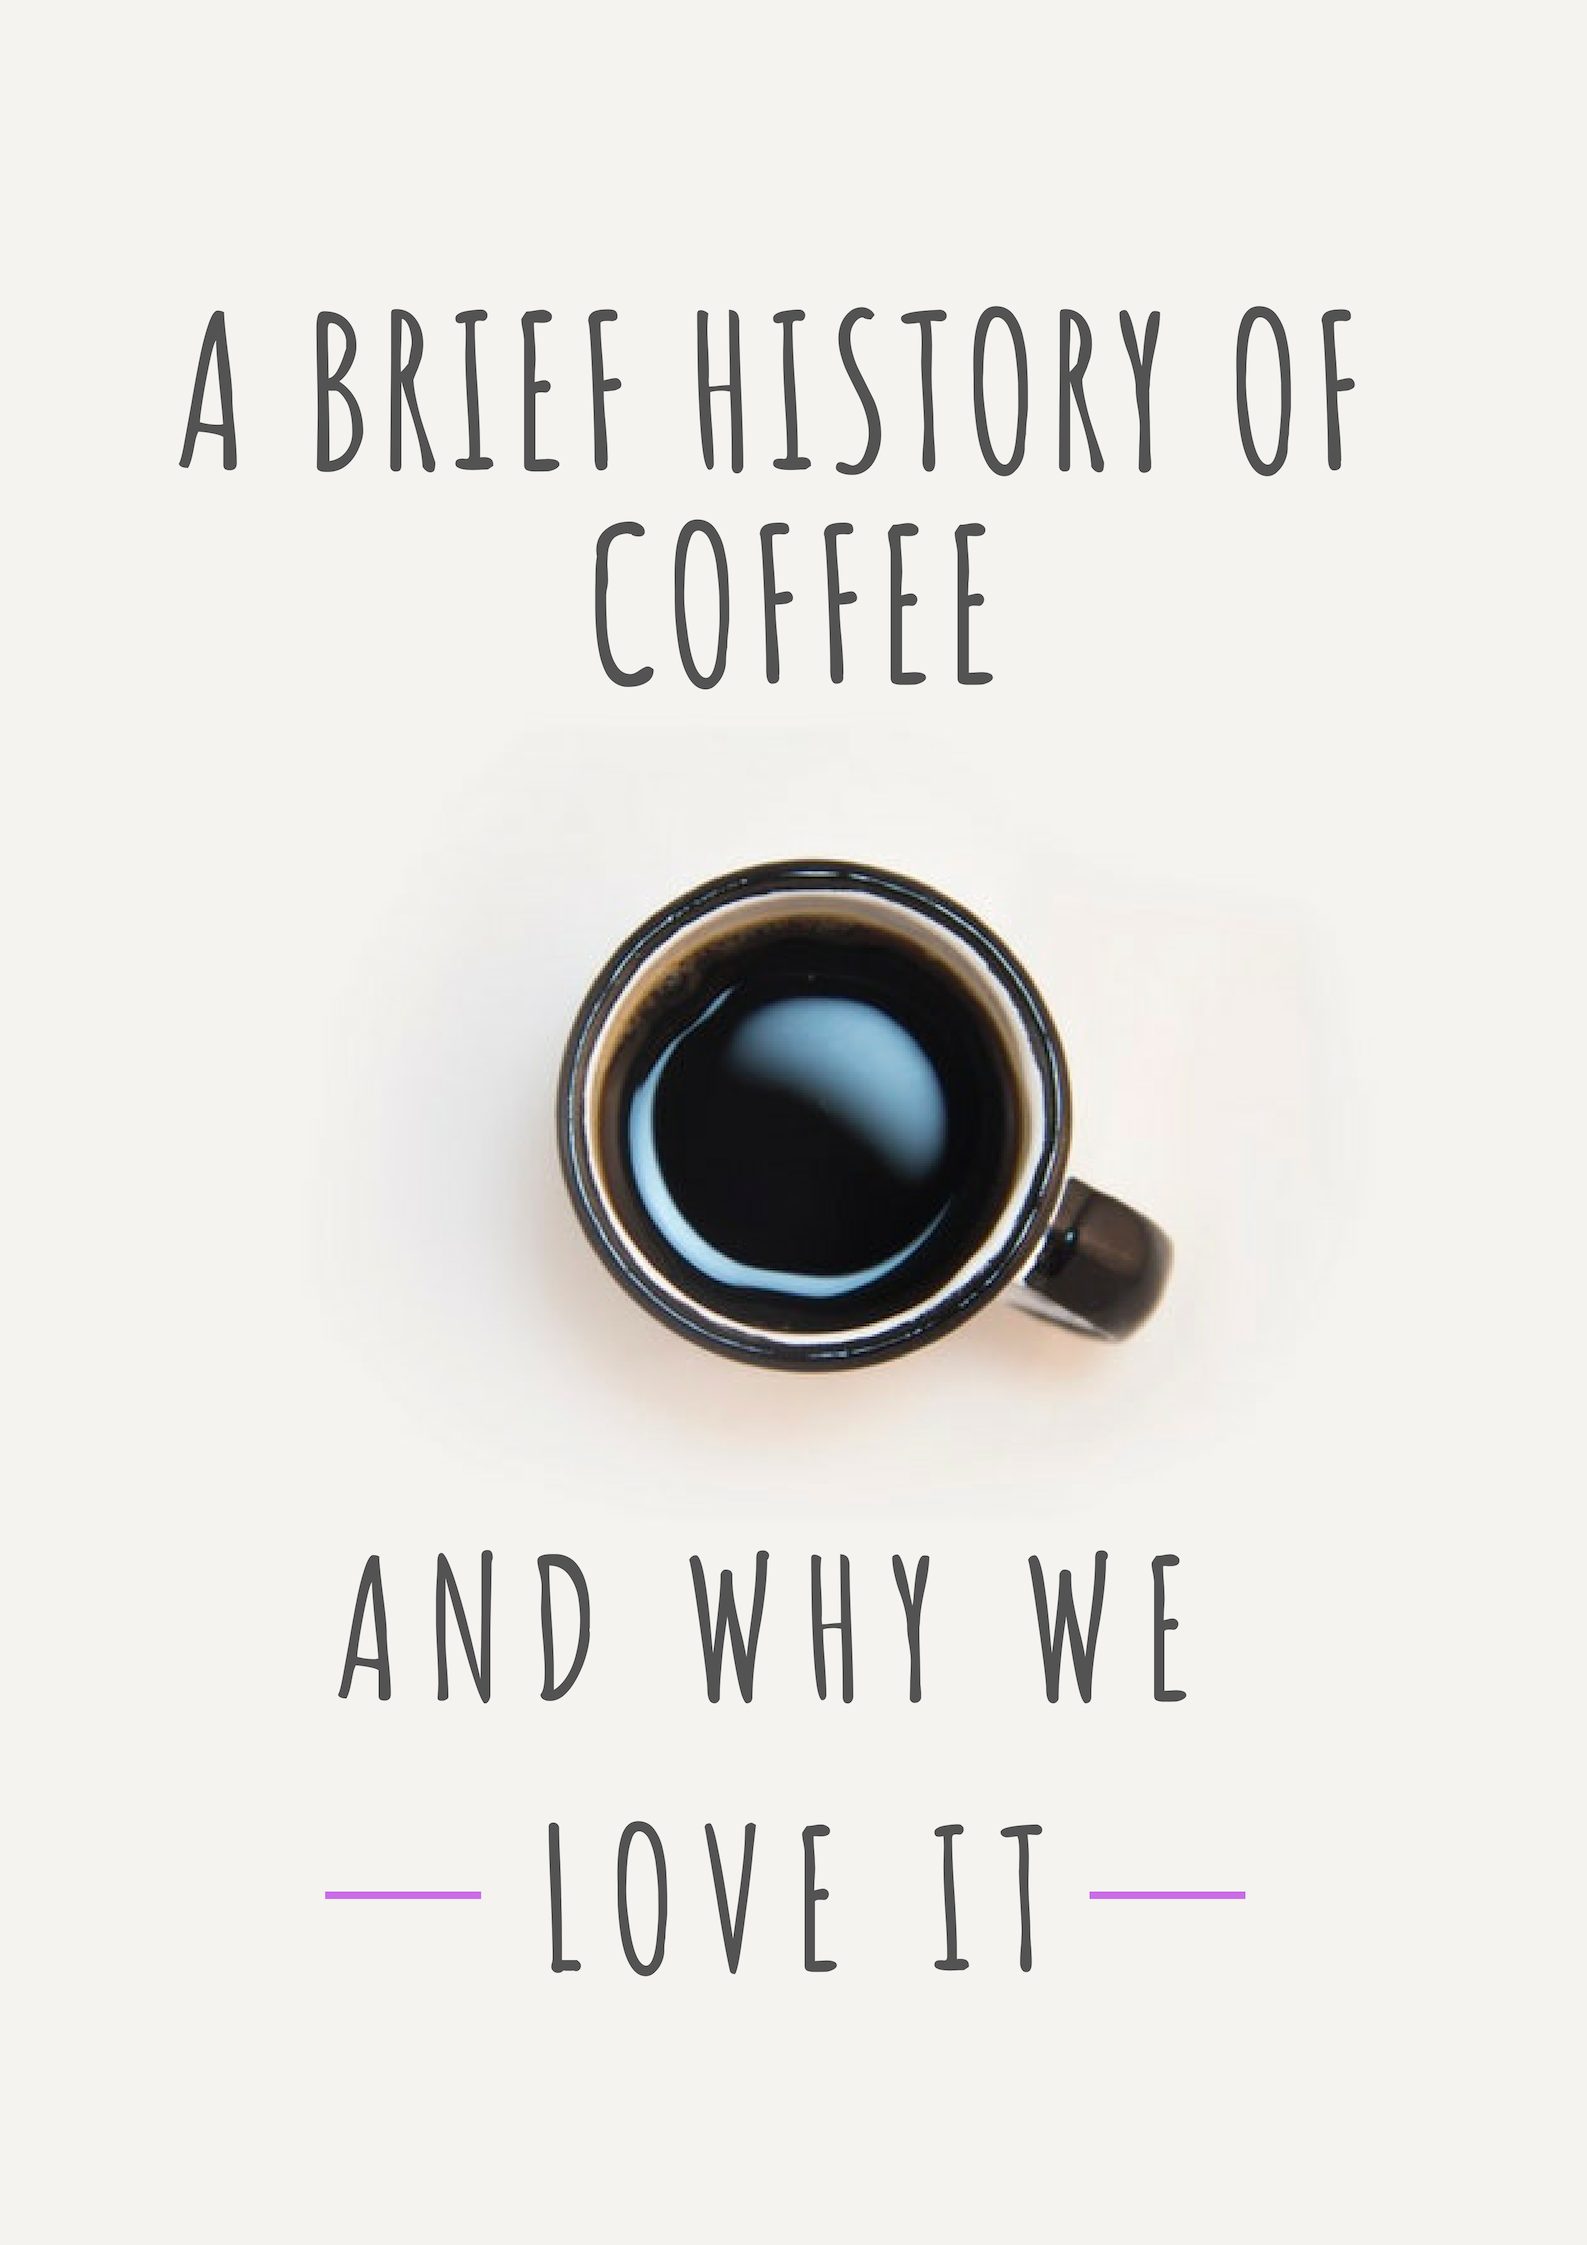 Coffee is one of the greatest gifts Mother Nature could give us. And with plenty of it to go around, why not use this gift to your favor!  With JavaJavaMoola, organizations such as non-profits, schools, churches and many more can use coffee to fundraise for their cause!